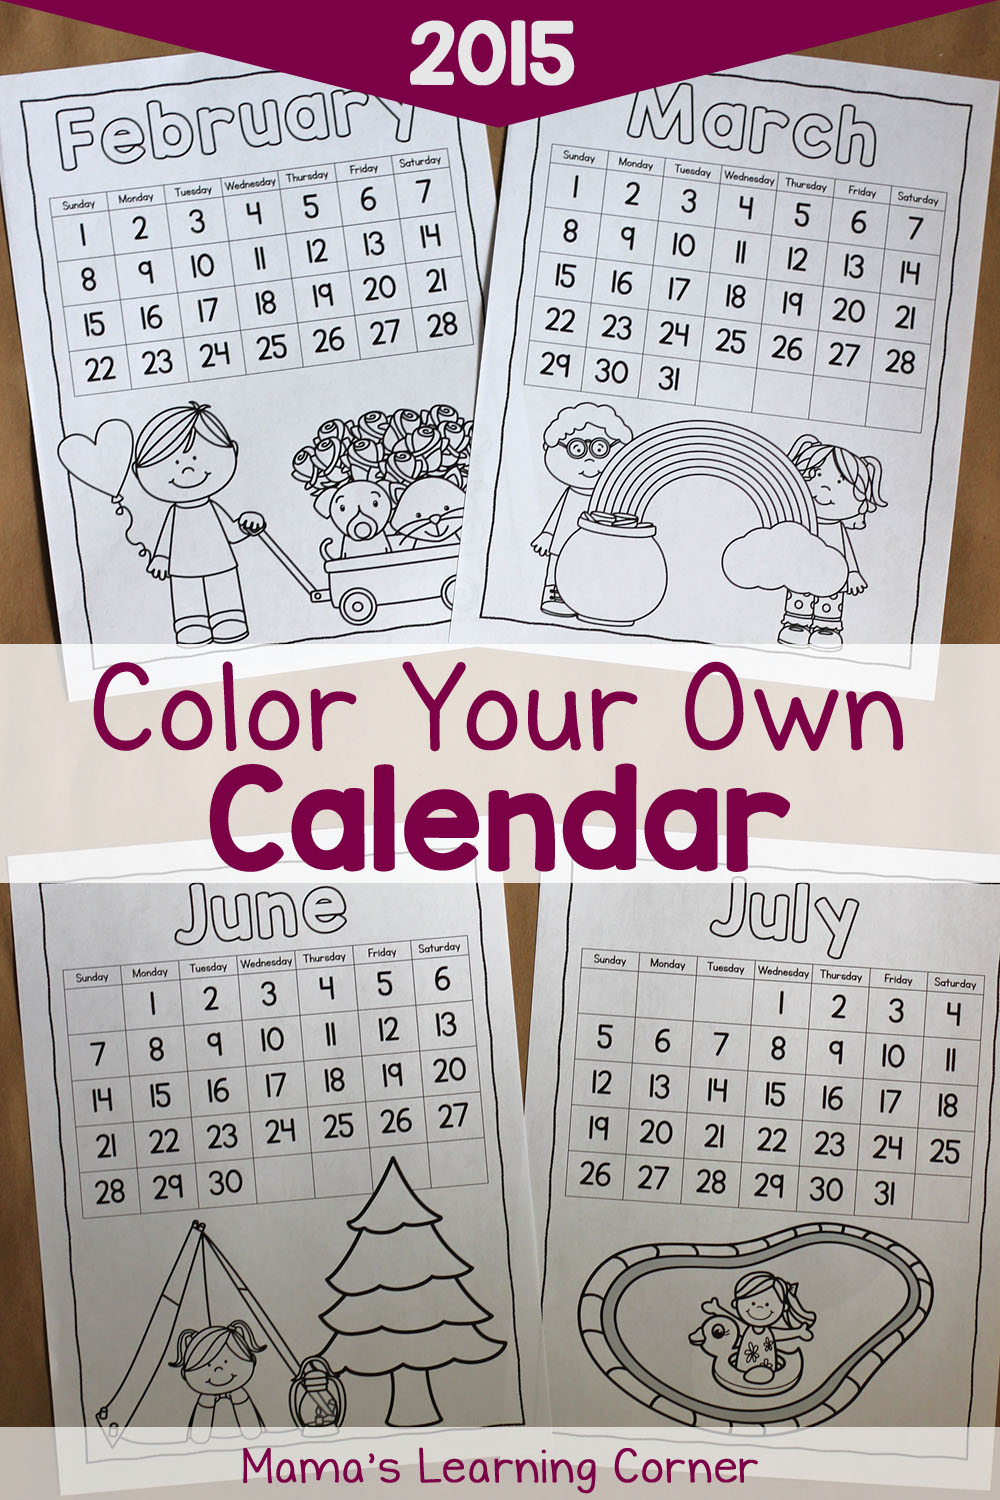 Color Your Own Calendar: Free Printable!